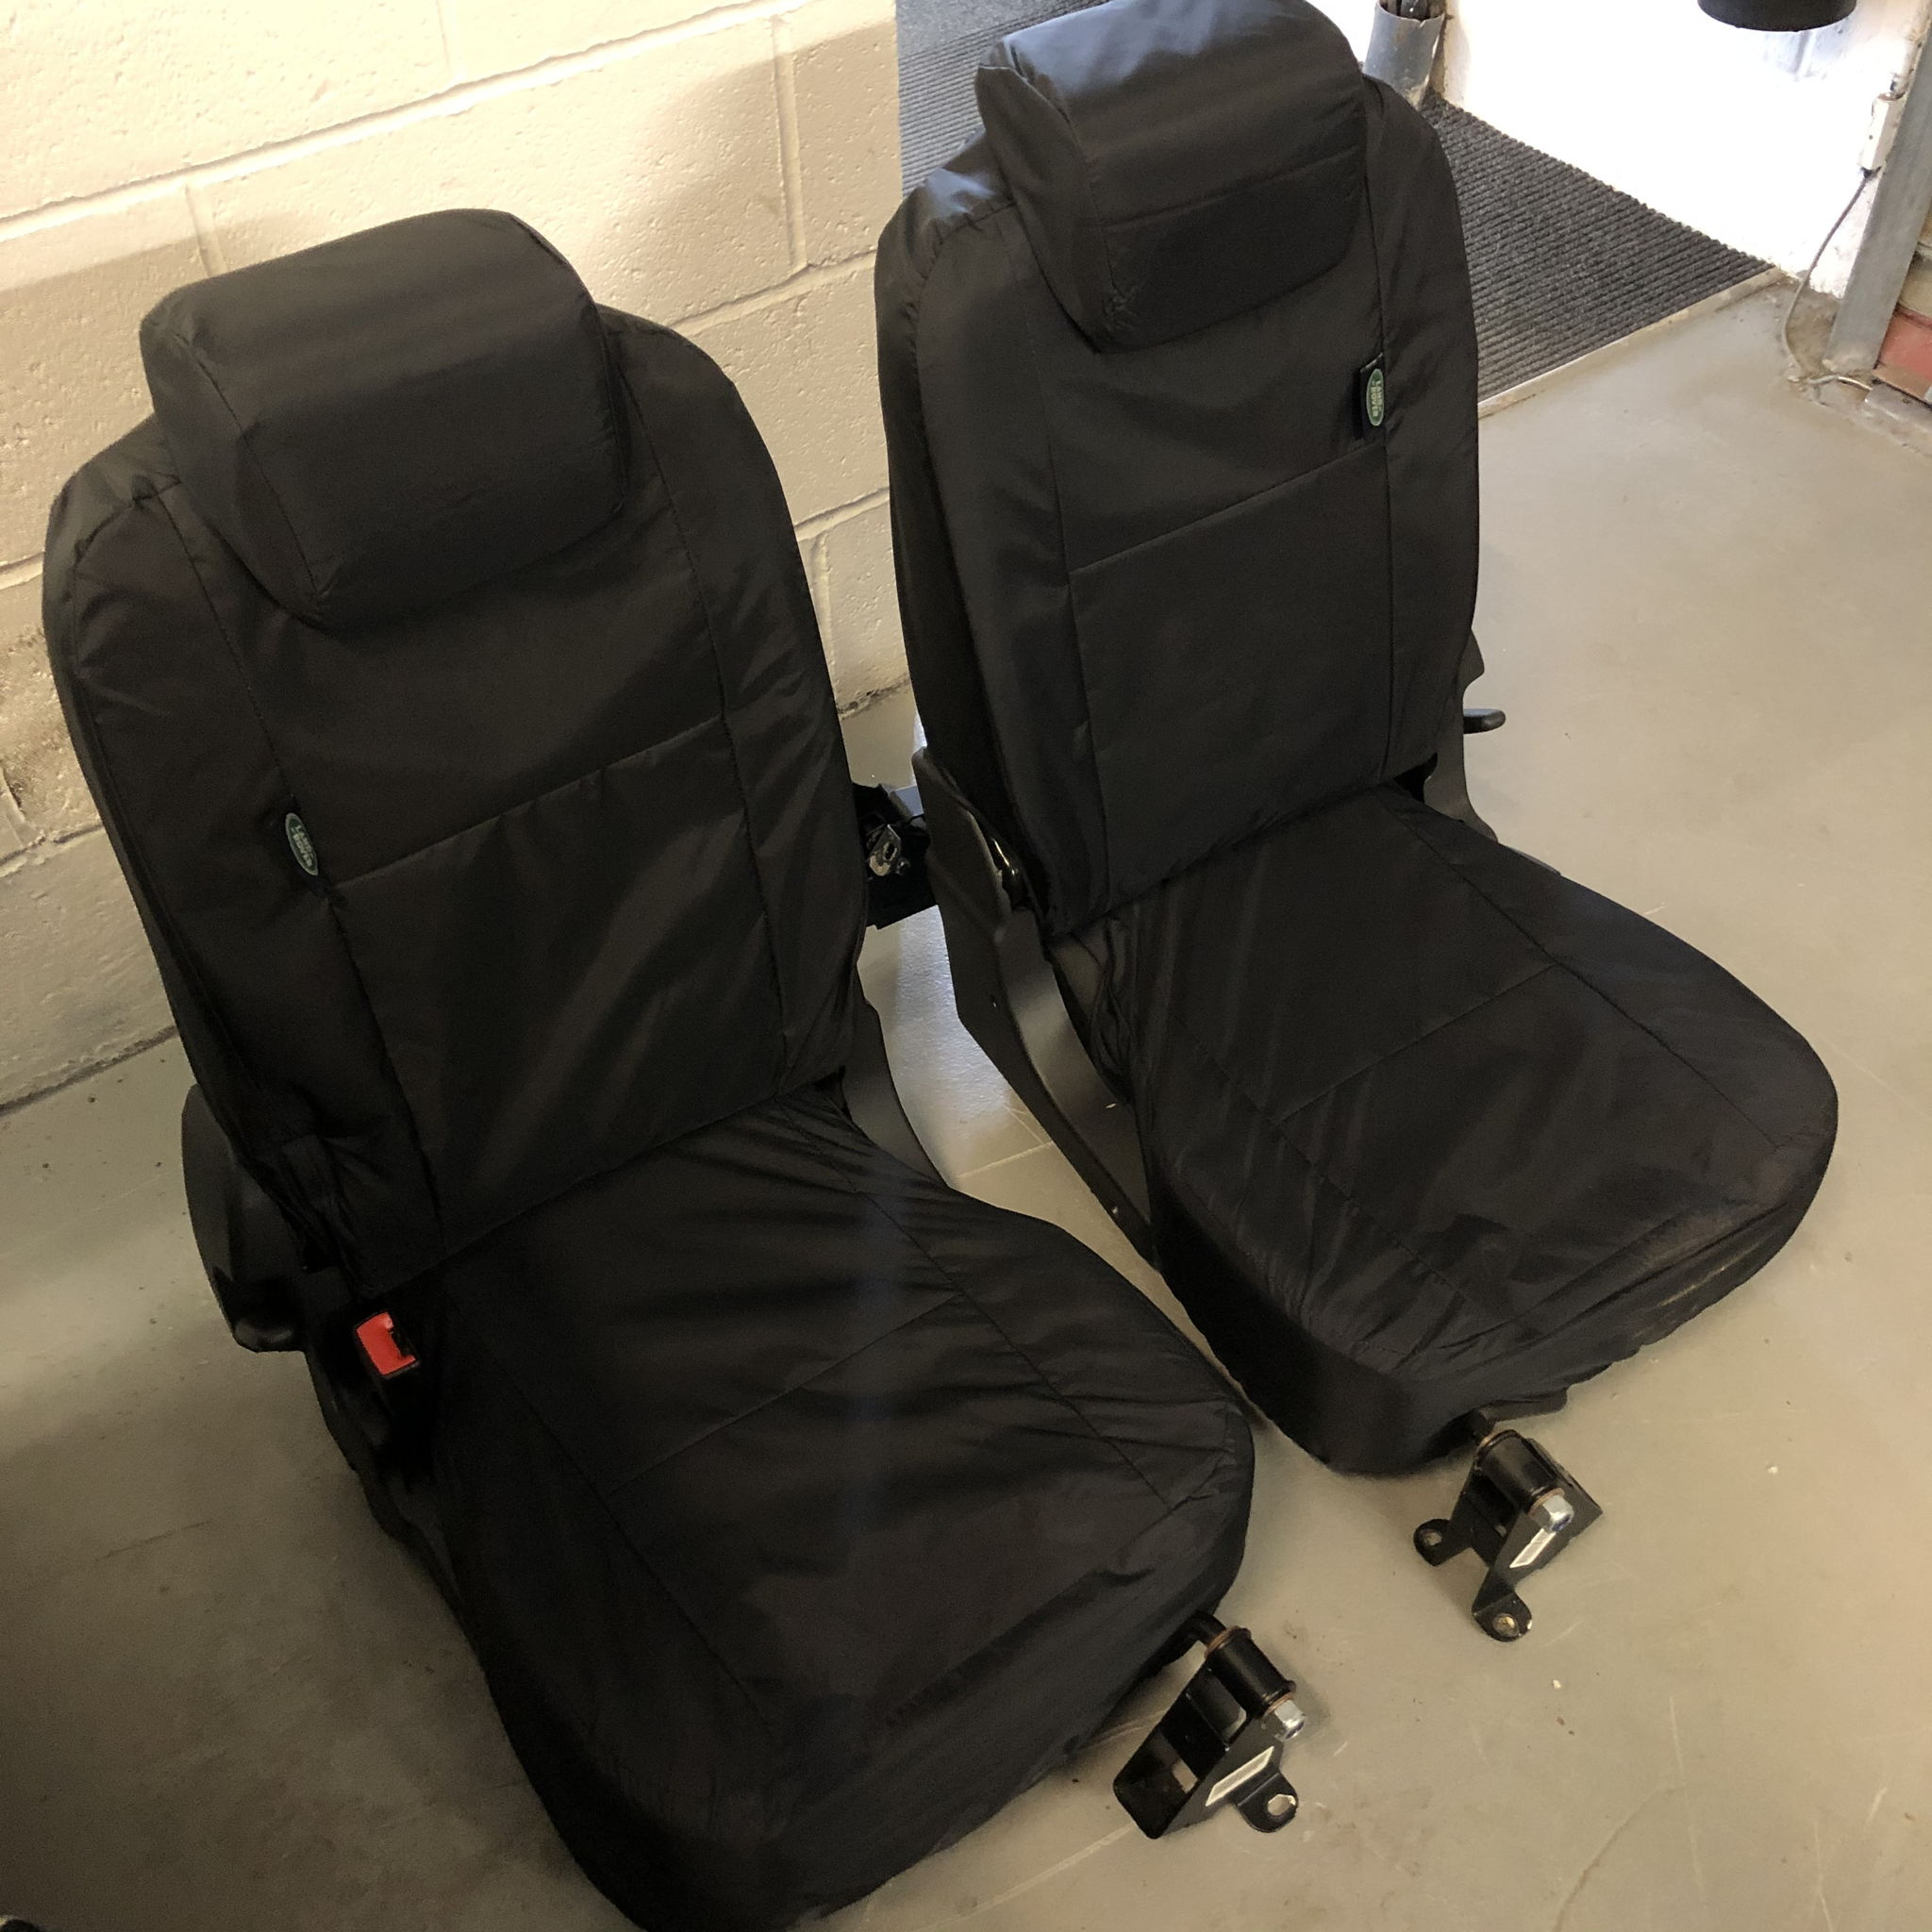 Genuine Land Rover Defender County Lock and Fold Seats's featured image